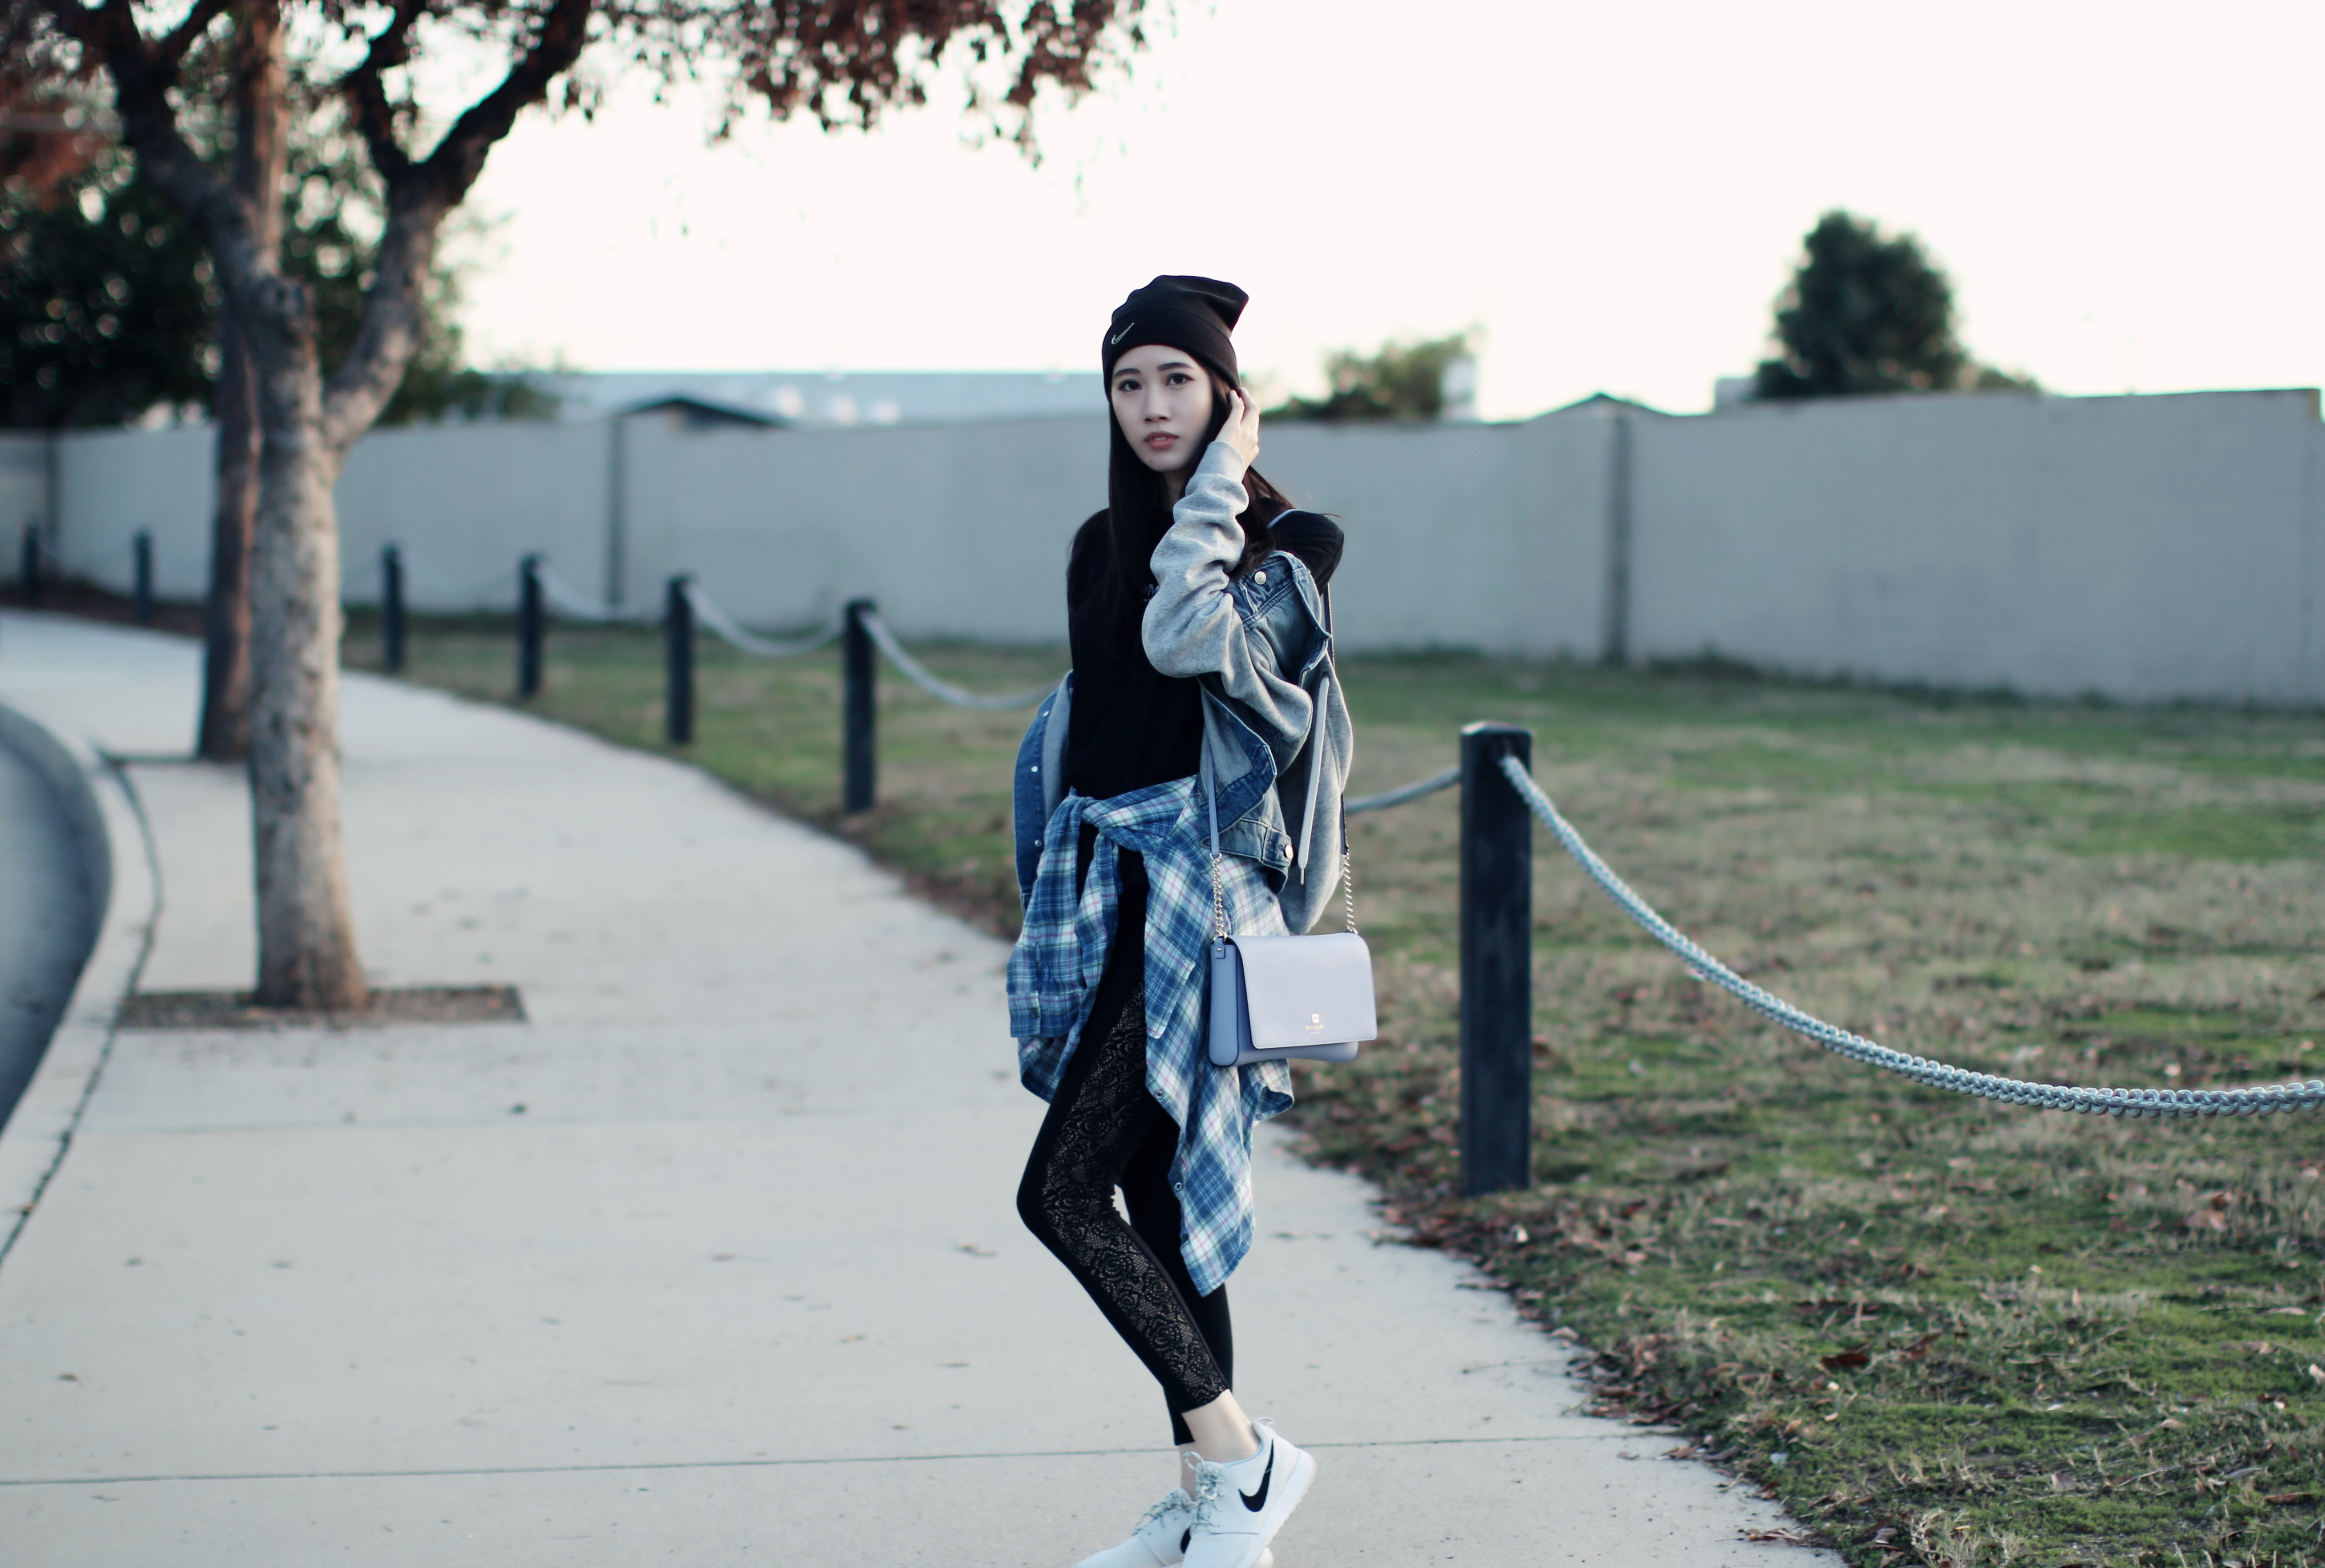 4314-ootd-fashion-style-outfitoftheday-wiwt-streetstyle-urbanoutfitters-hm-f21xme-nike-elizabeeetht-clothestoyouuu